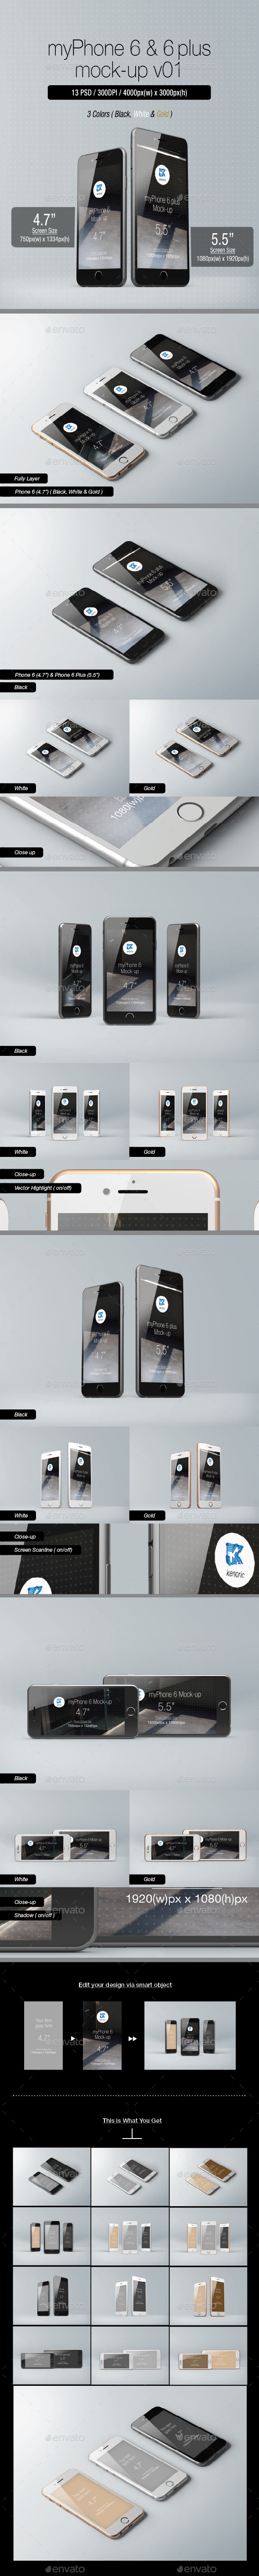 GraphicRiver myPhone 6 Mock-up v01 9005552